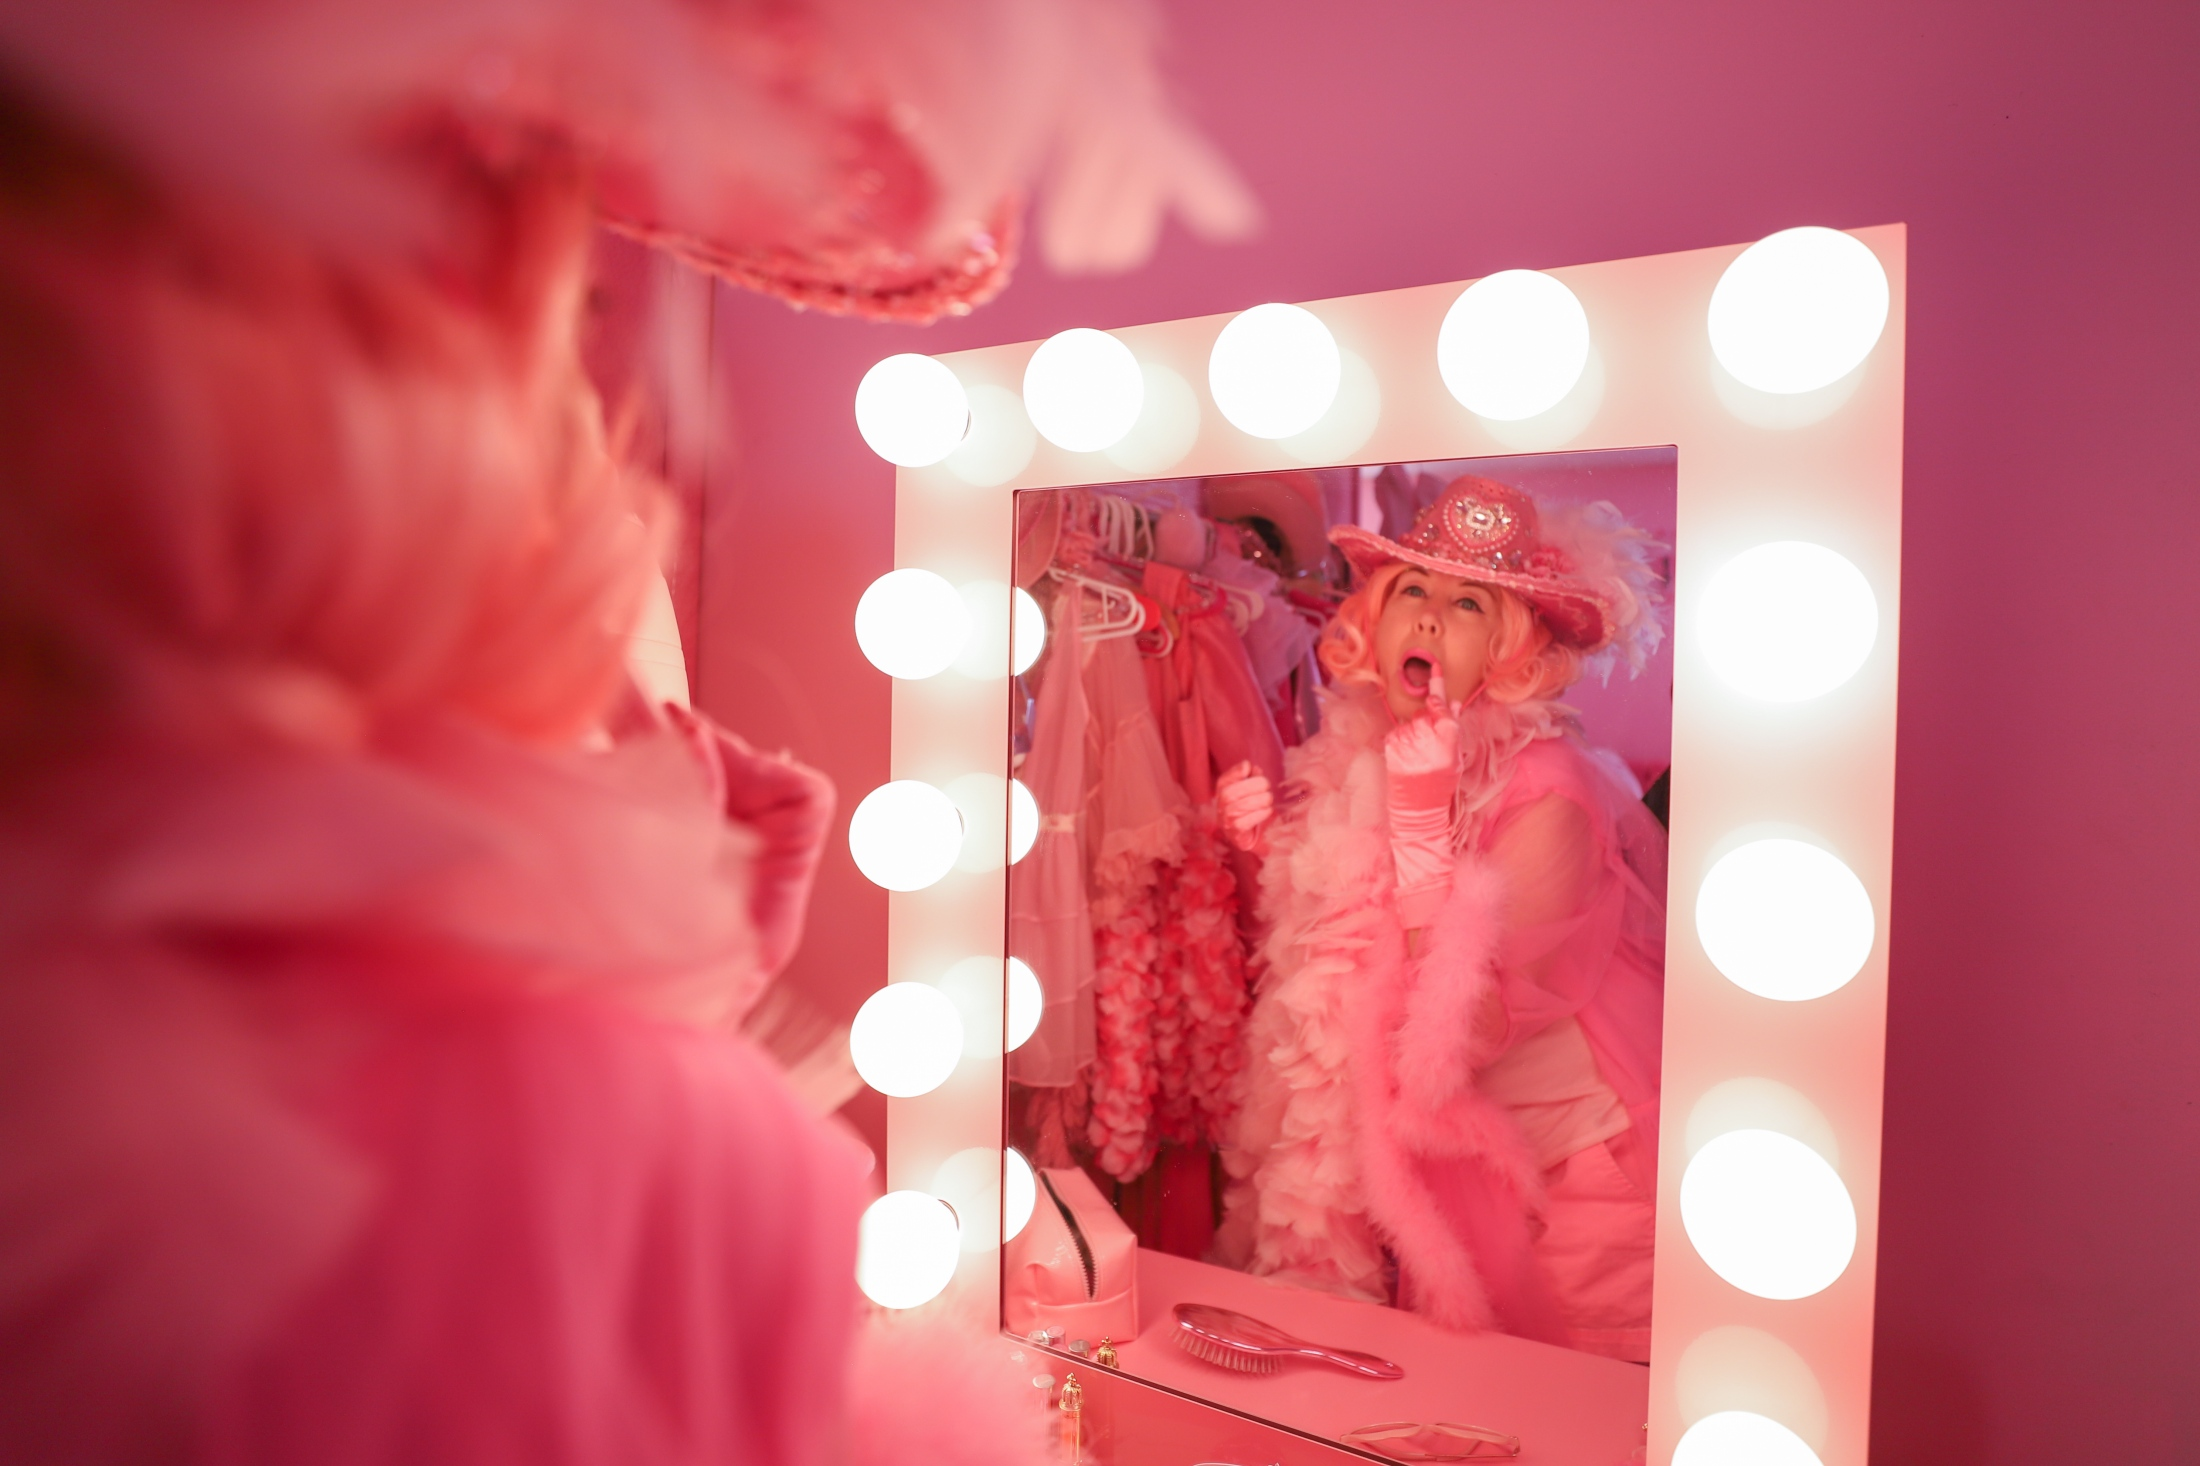 Art and Documentary Photography - Loading Silva_Pink_Lady_of_Hollywood__4597.jpg